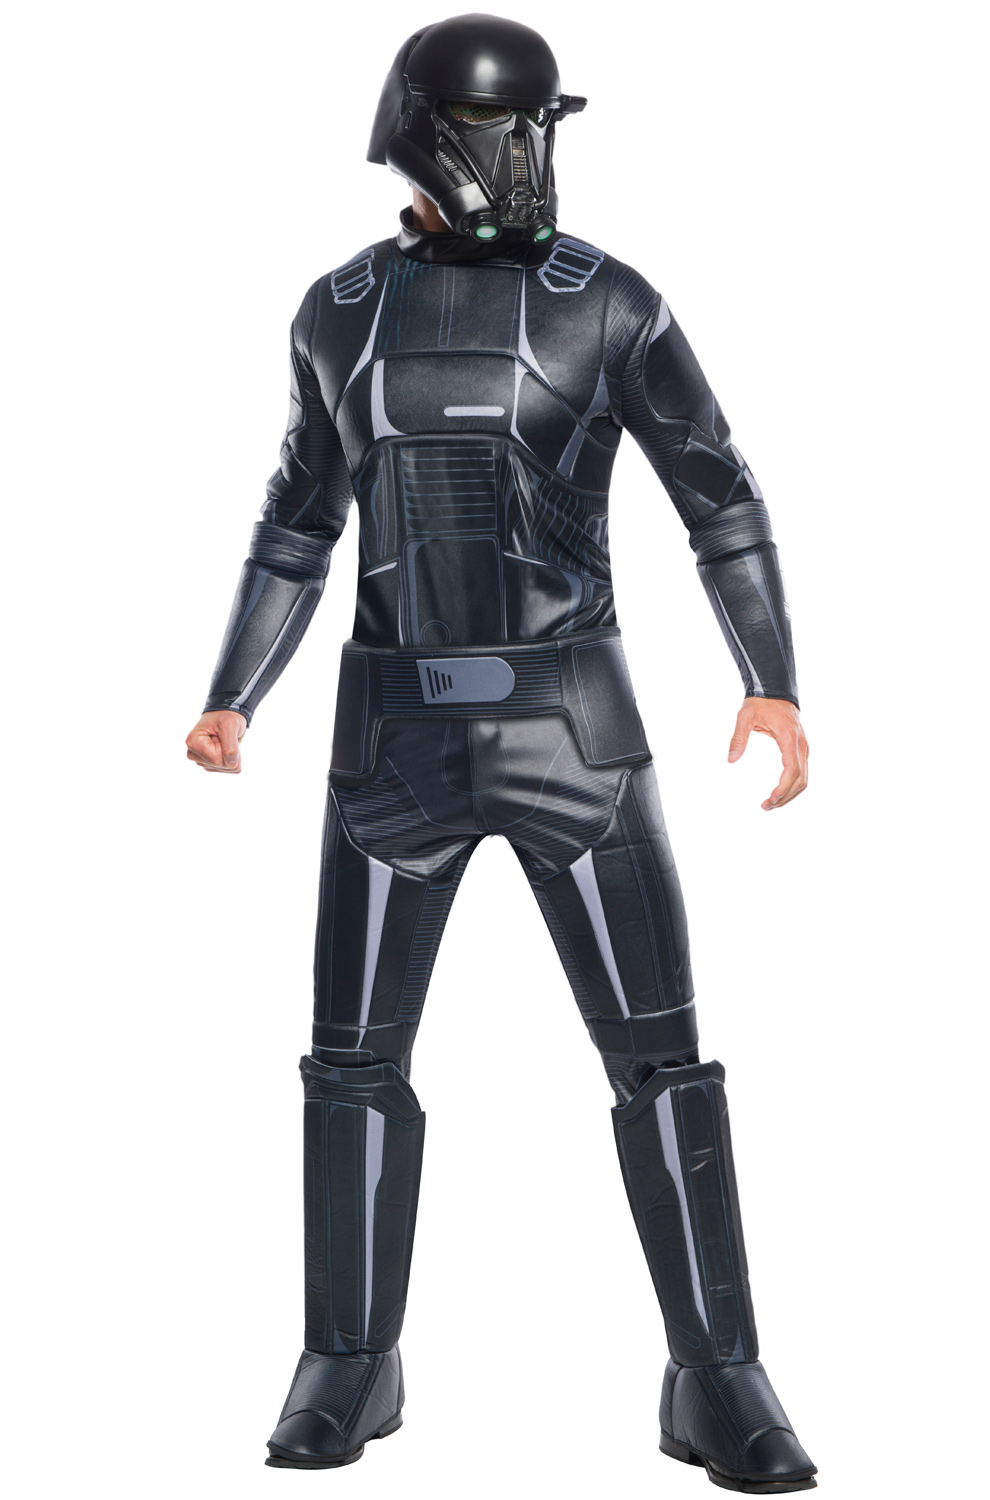 Star Wars Rogue One Deluxe Death Trooper Adult Costume Ebay